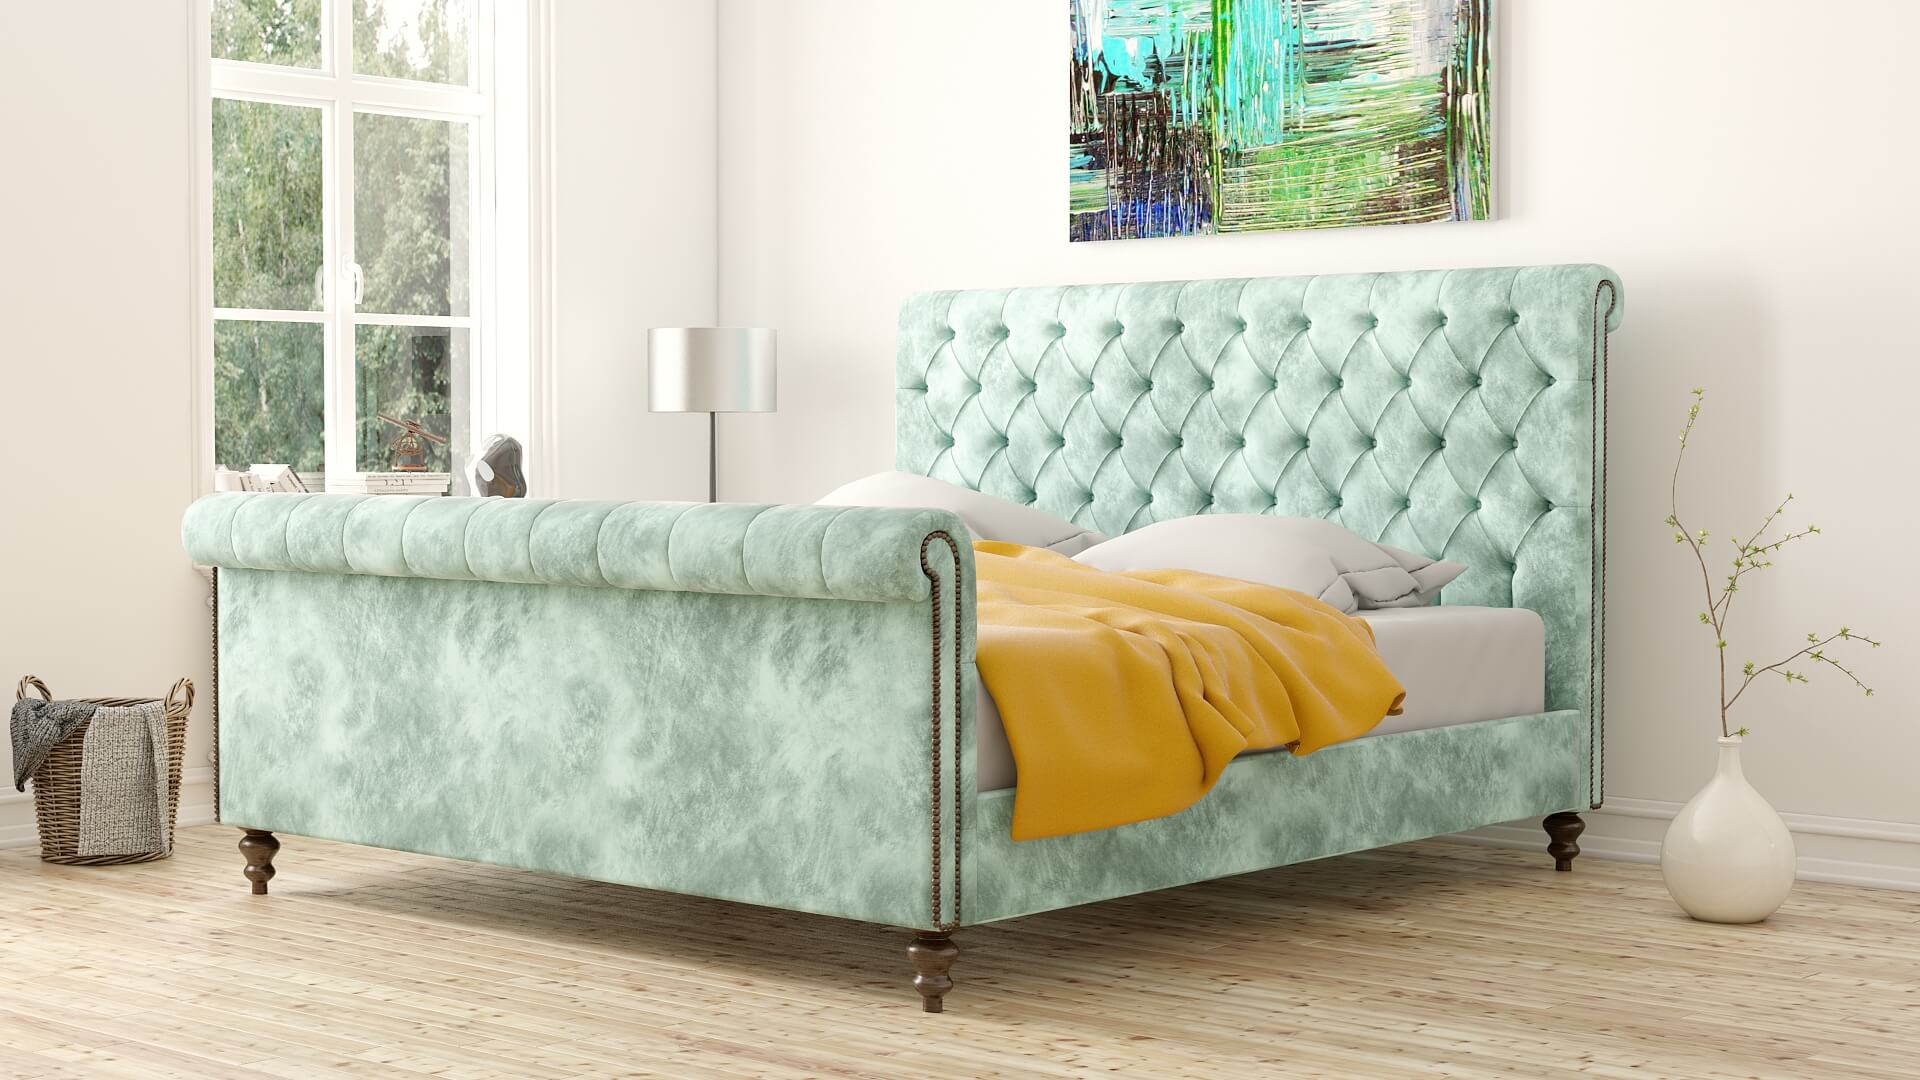 kaila bed furniture gallery 3